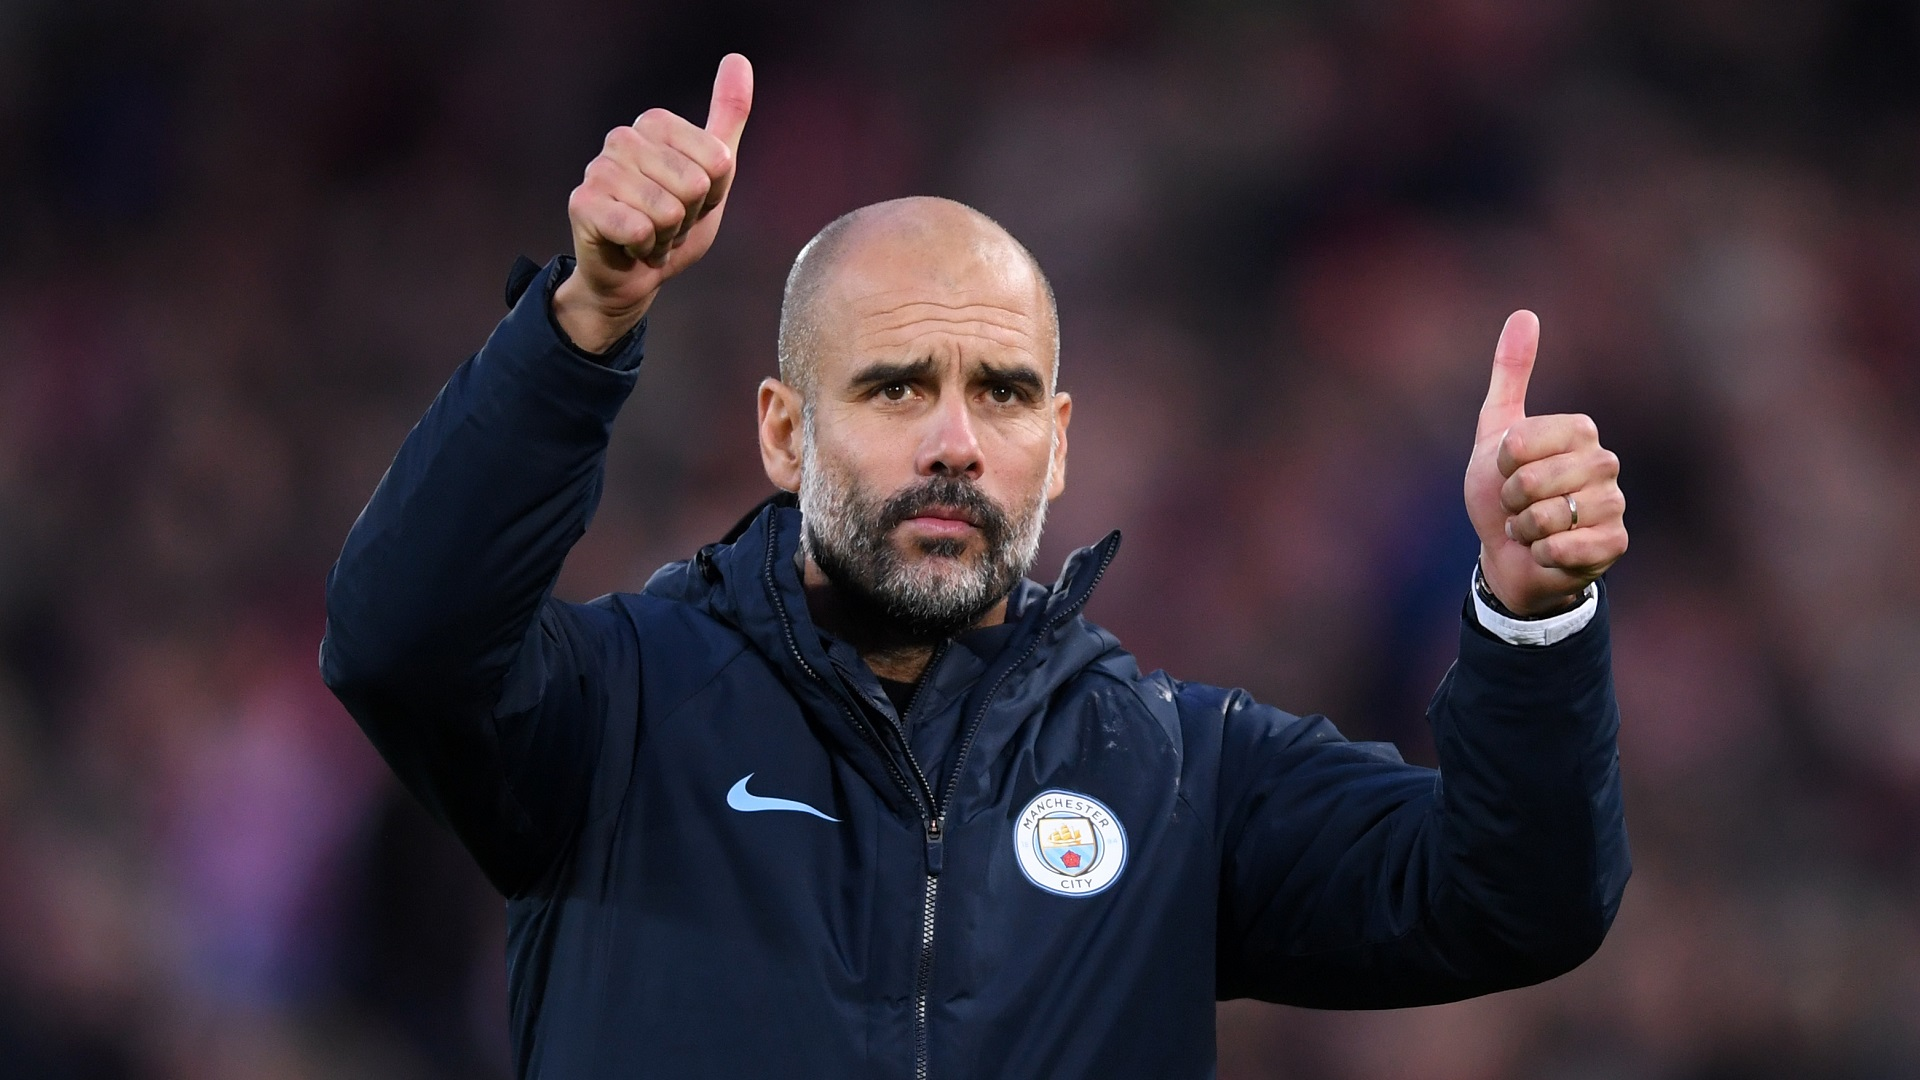 'Guardiola is a great coach and it's a pleasure working with him' - Foden hails Man City boss